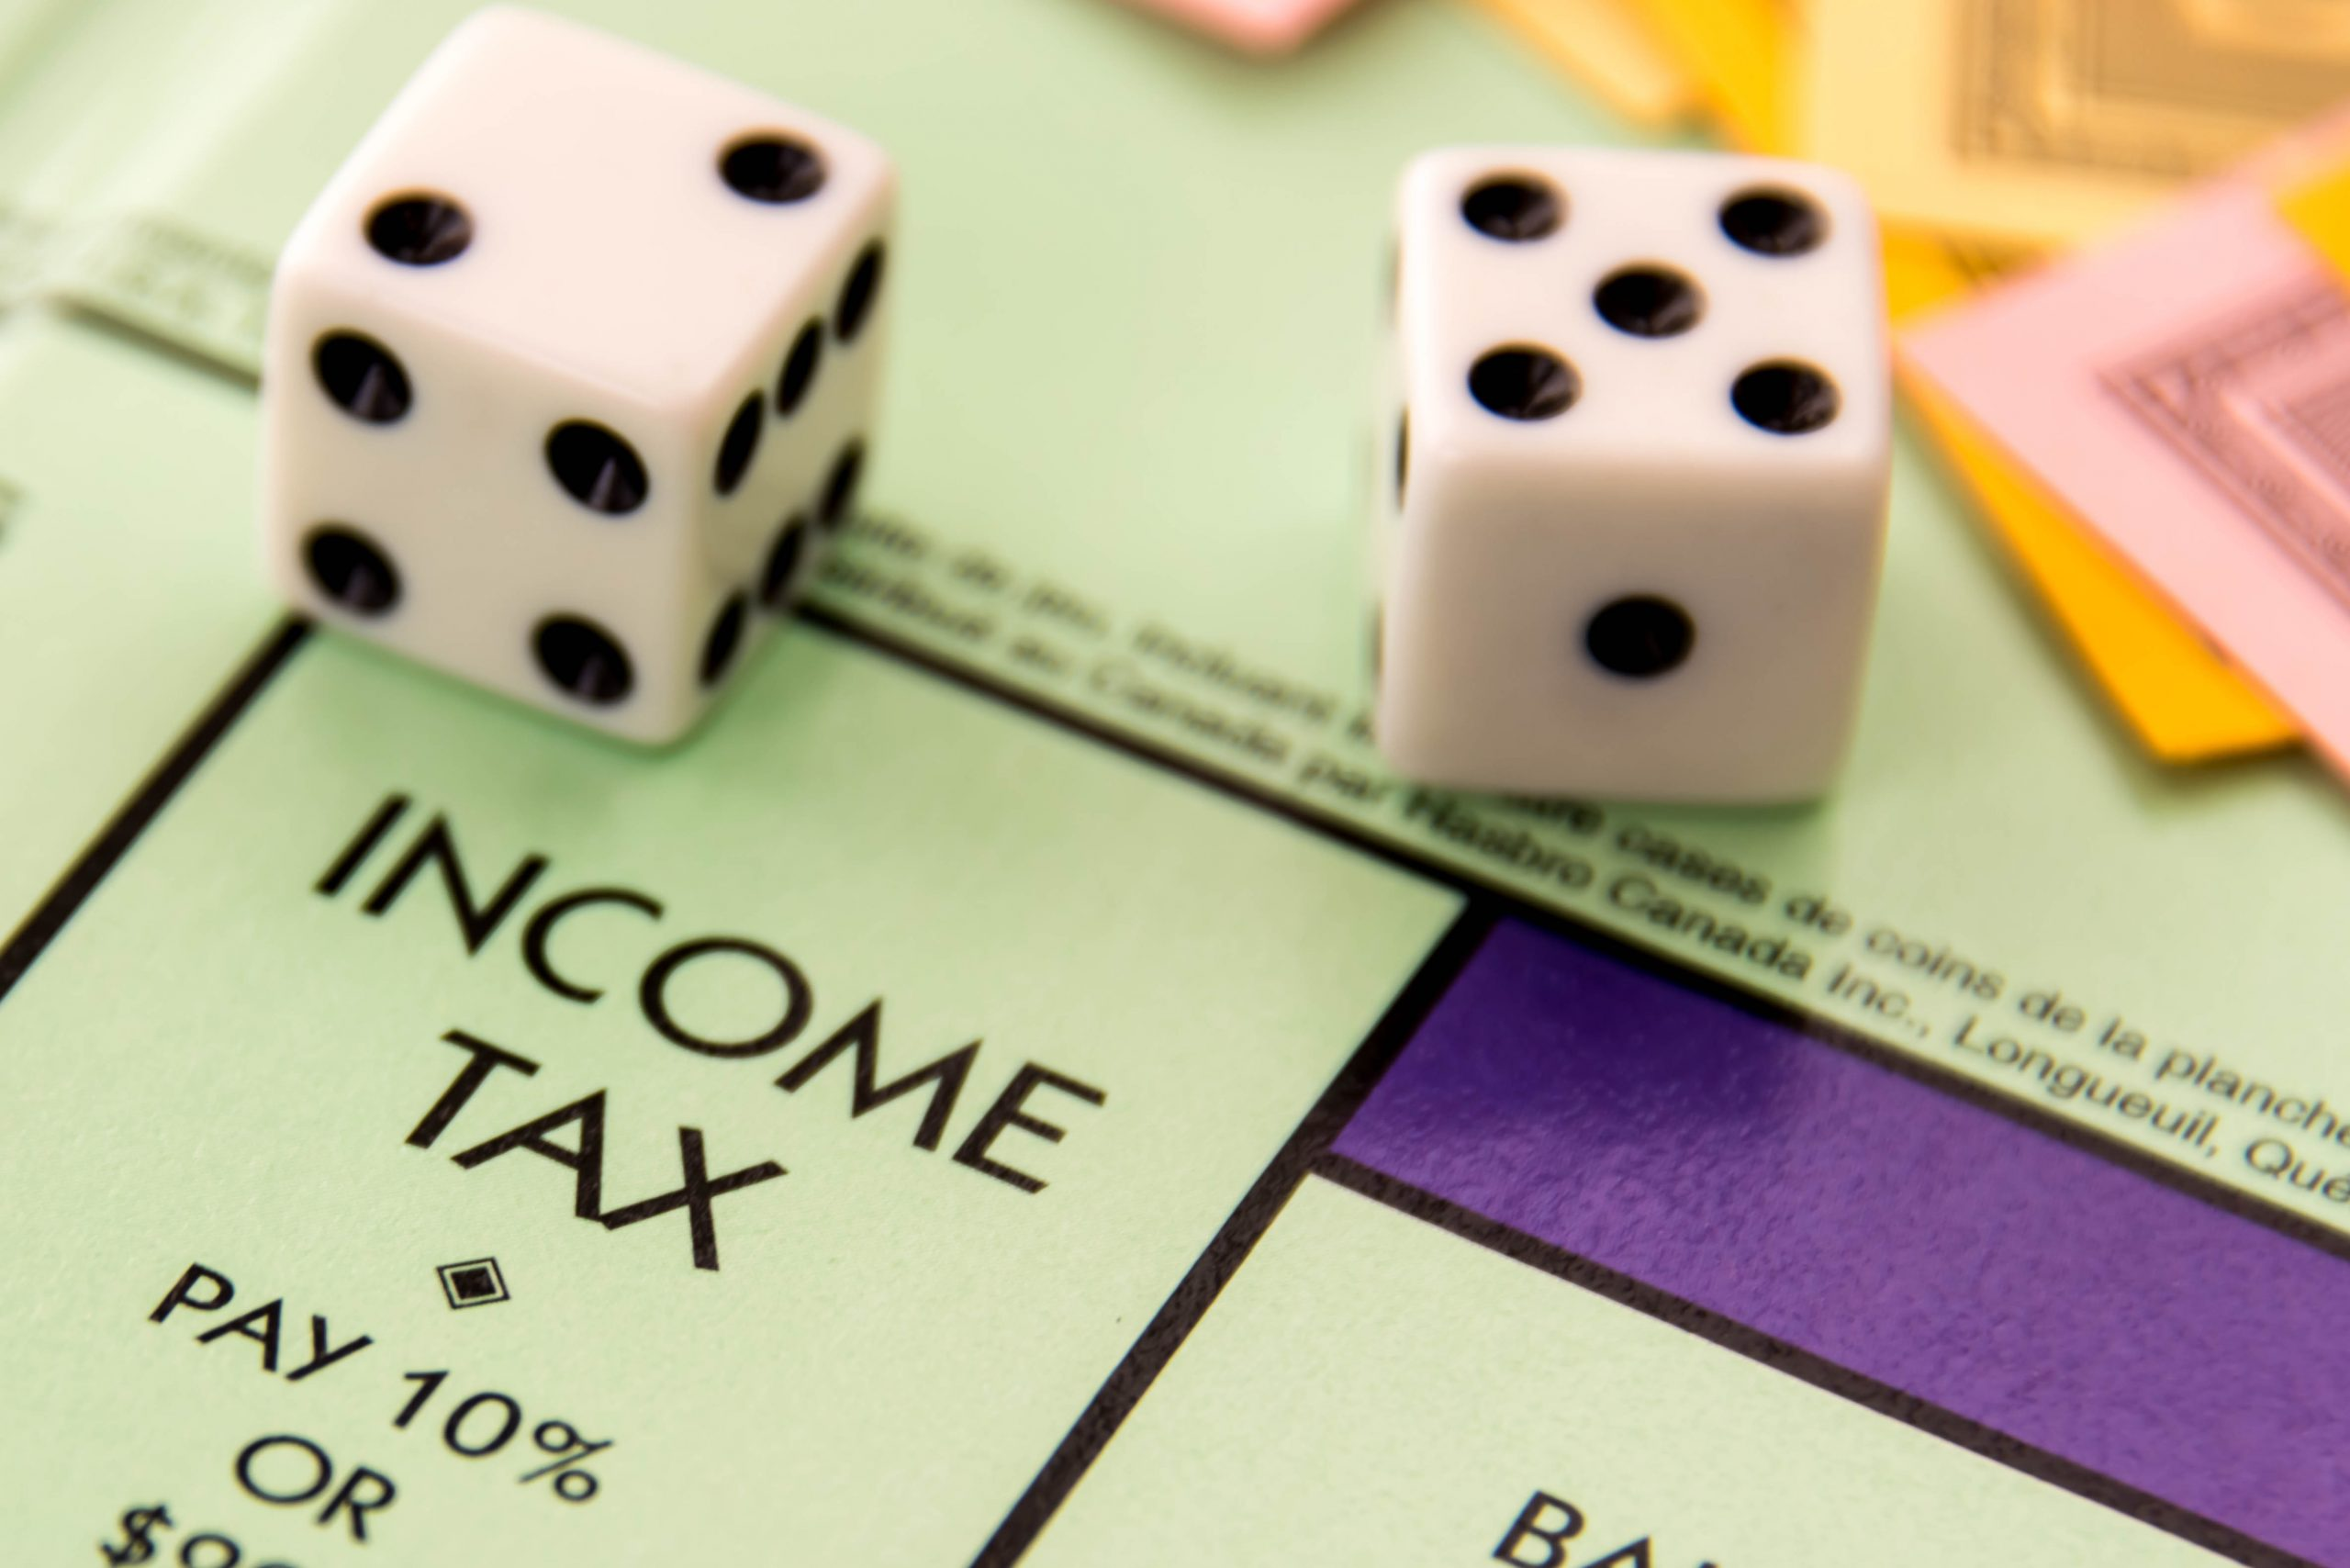 Income tax on monopoly board